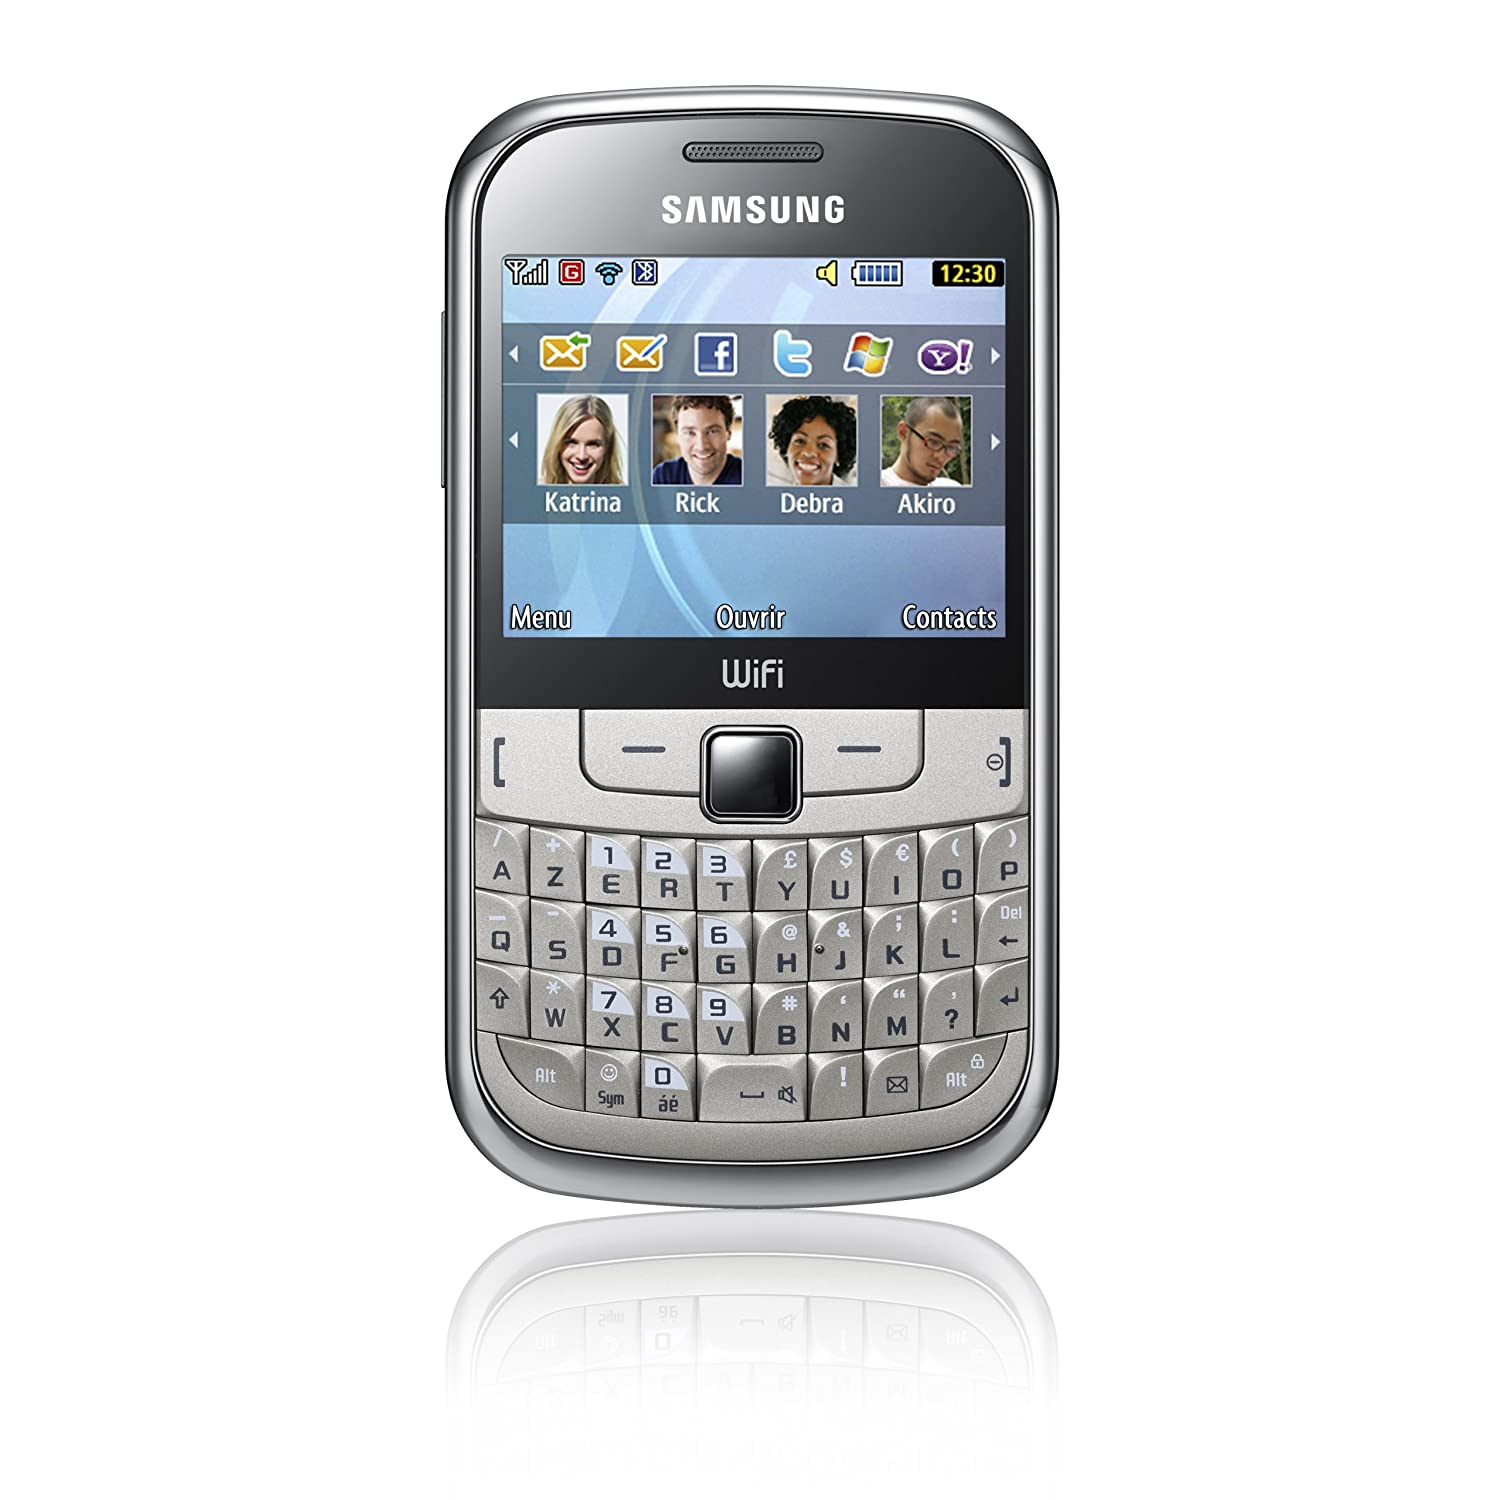 Comparer SAMSUNG CHAT 335 BLANC